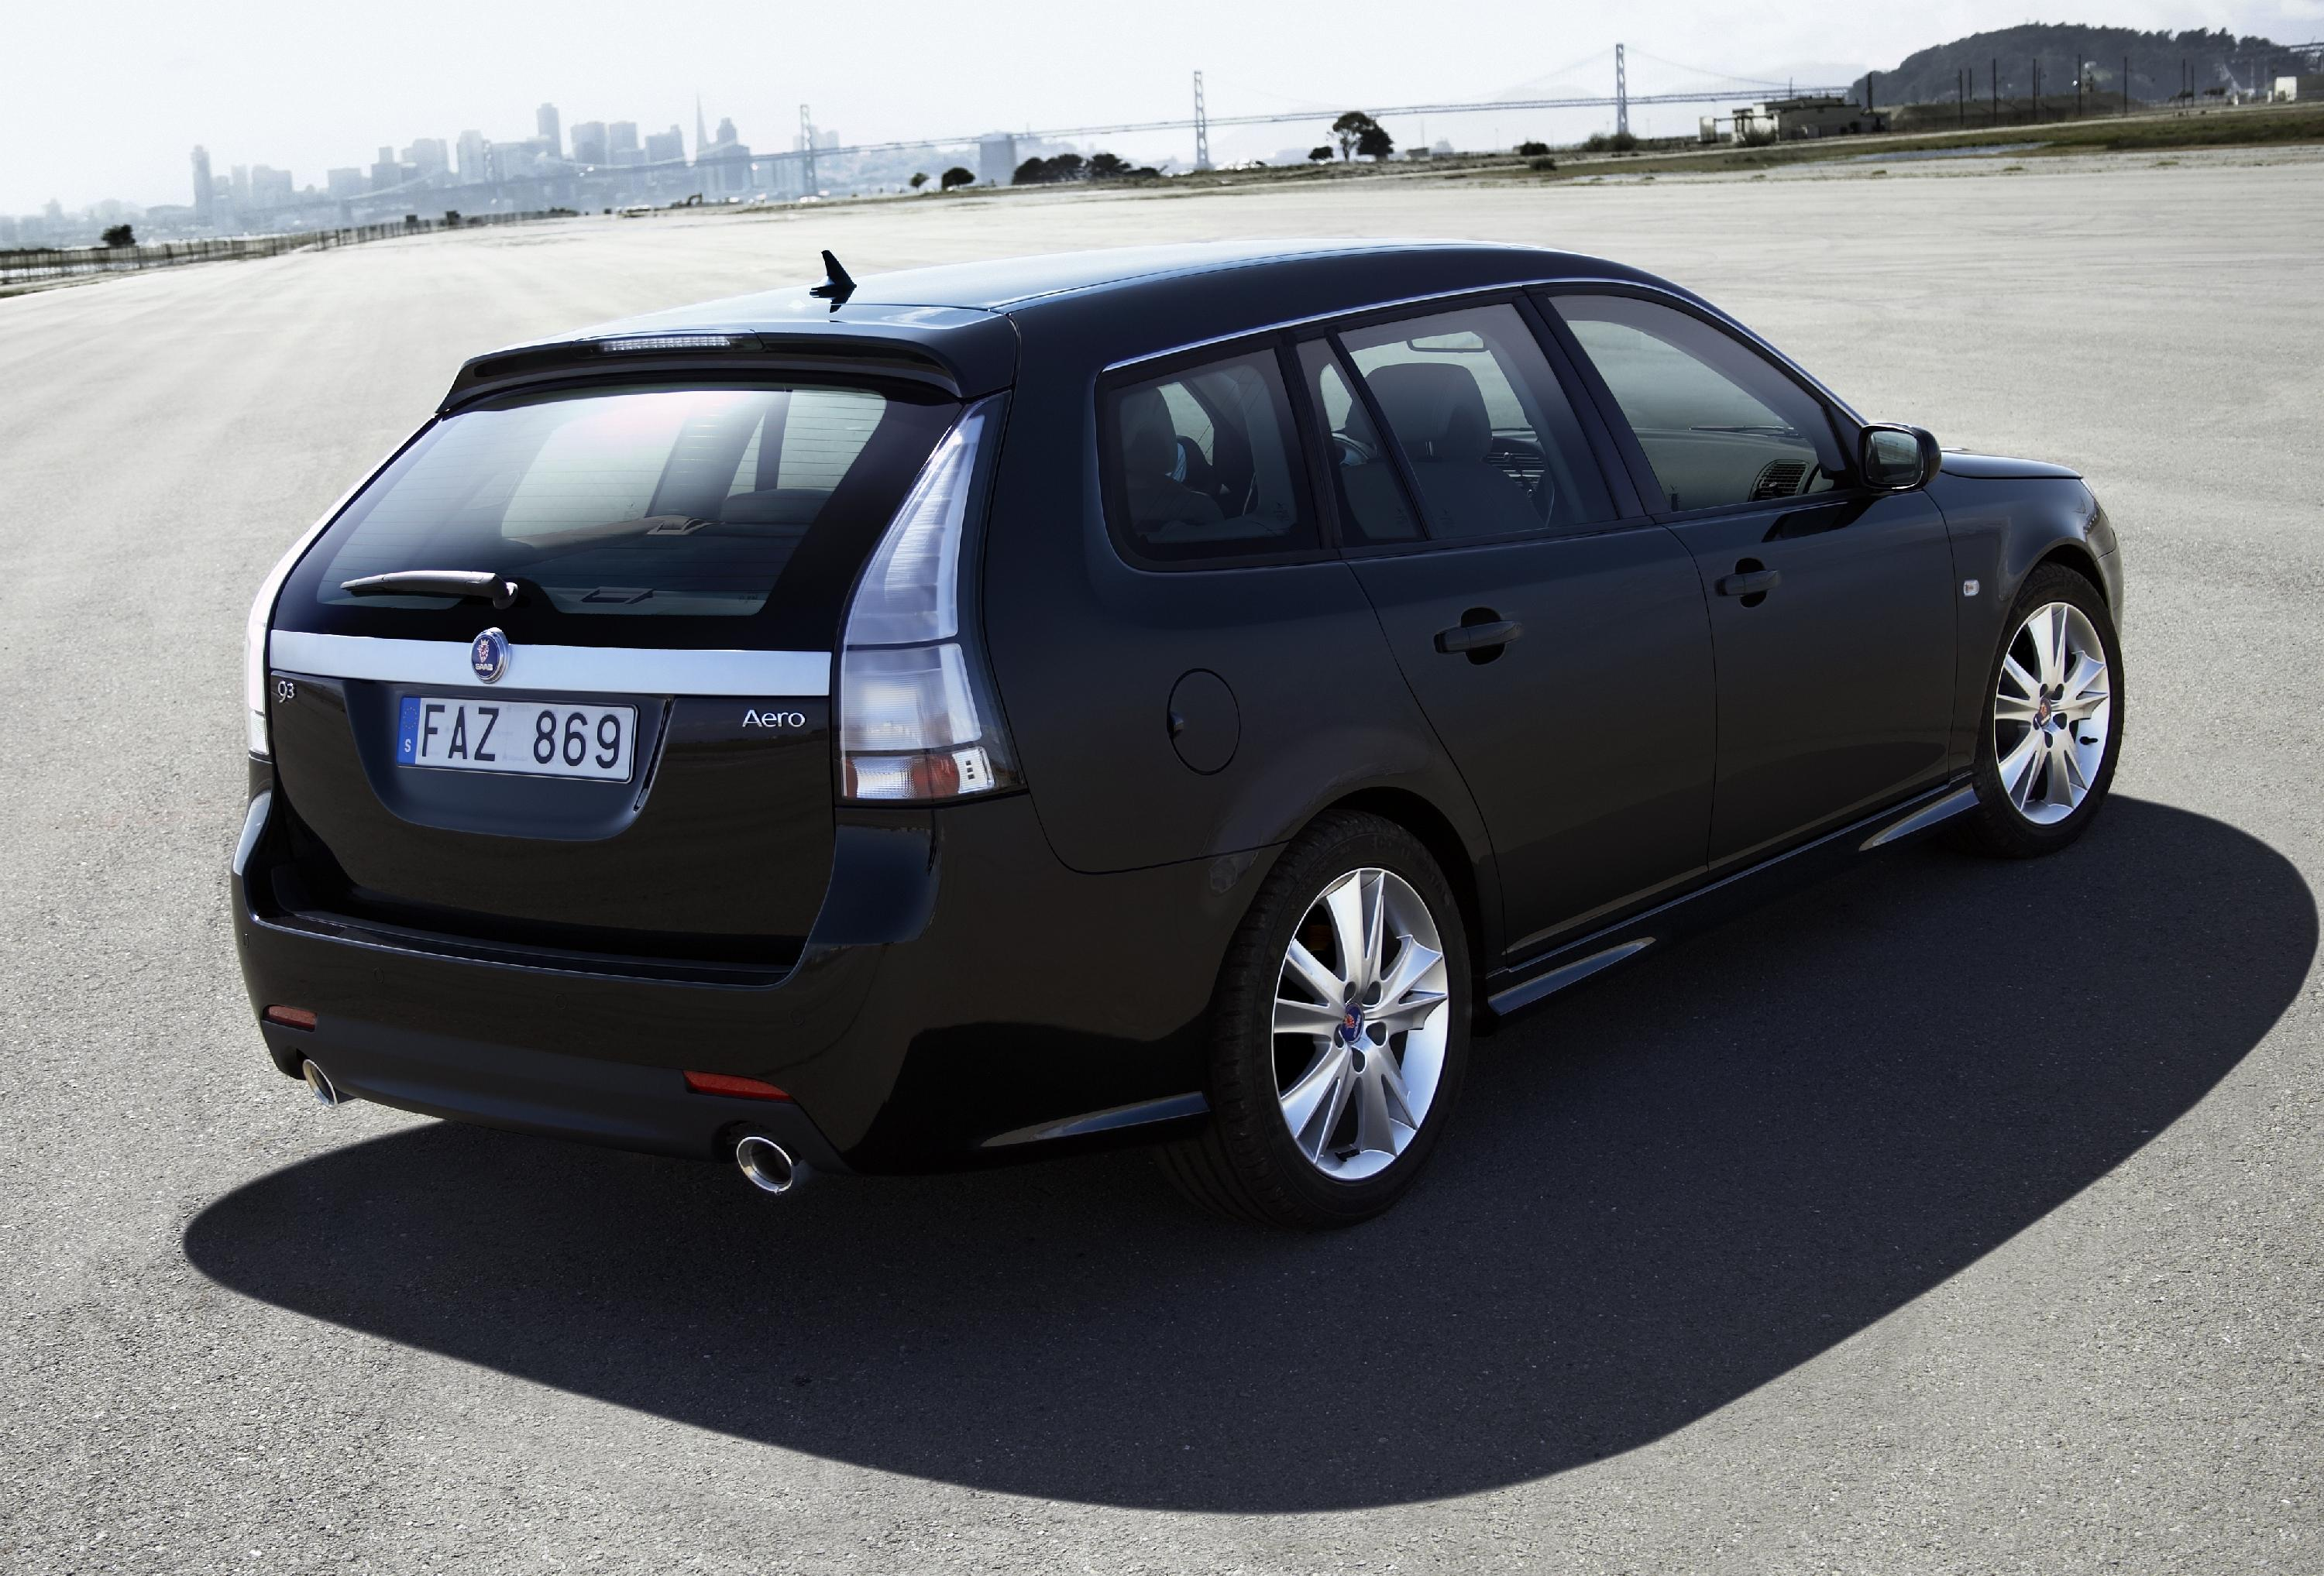 2008 Saab 9 3 Sport Sedan And SportCombi | Top Speed. »